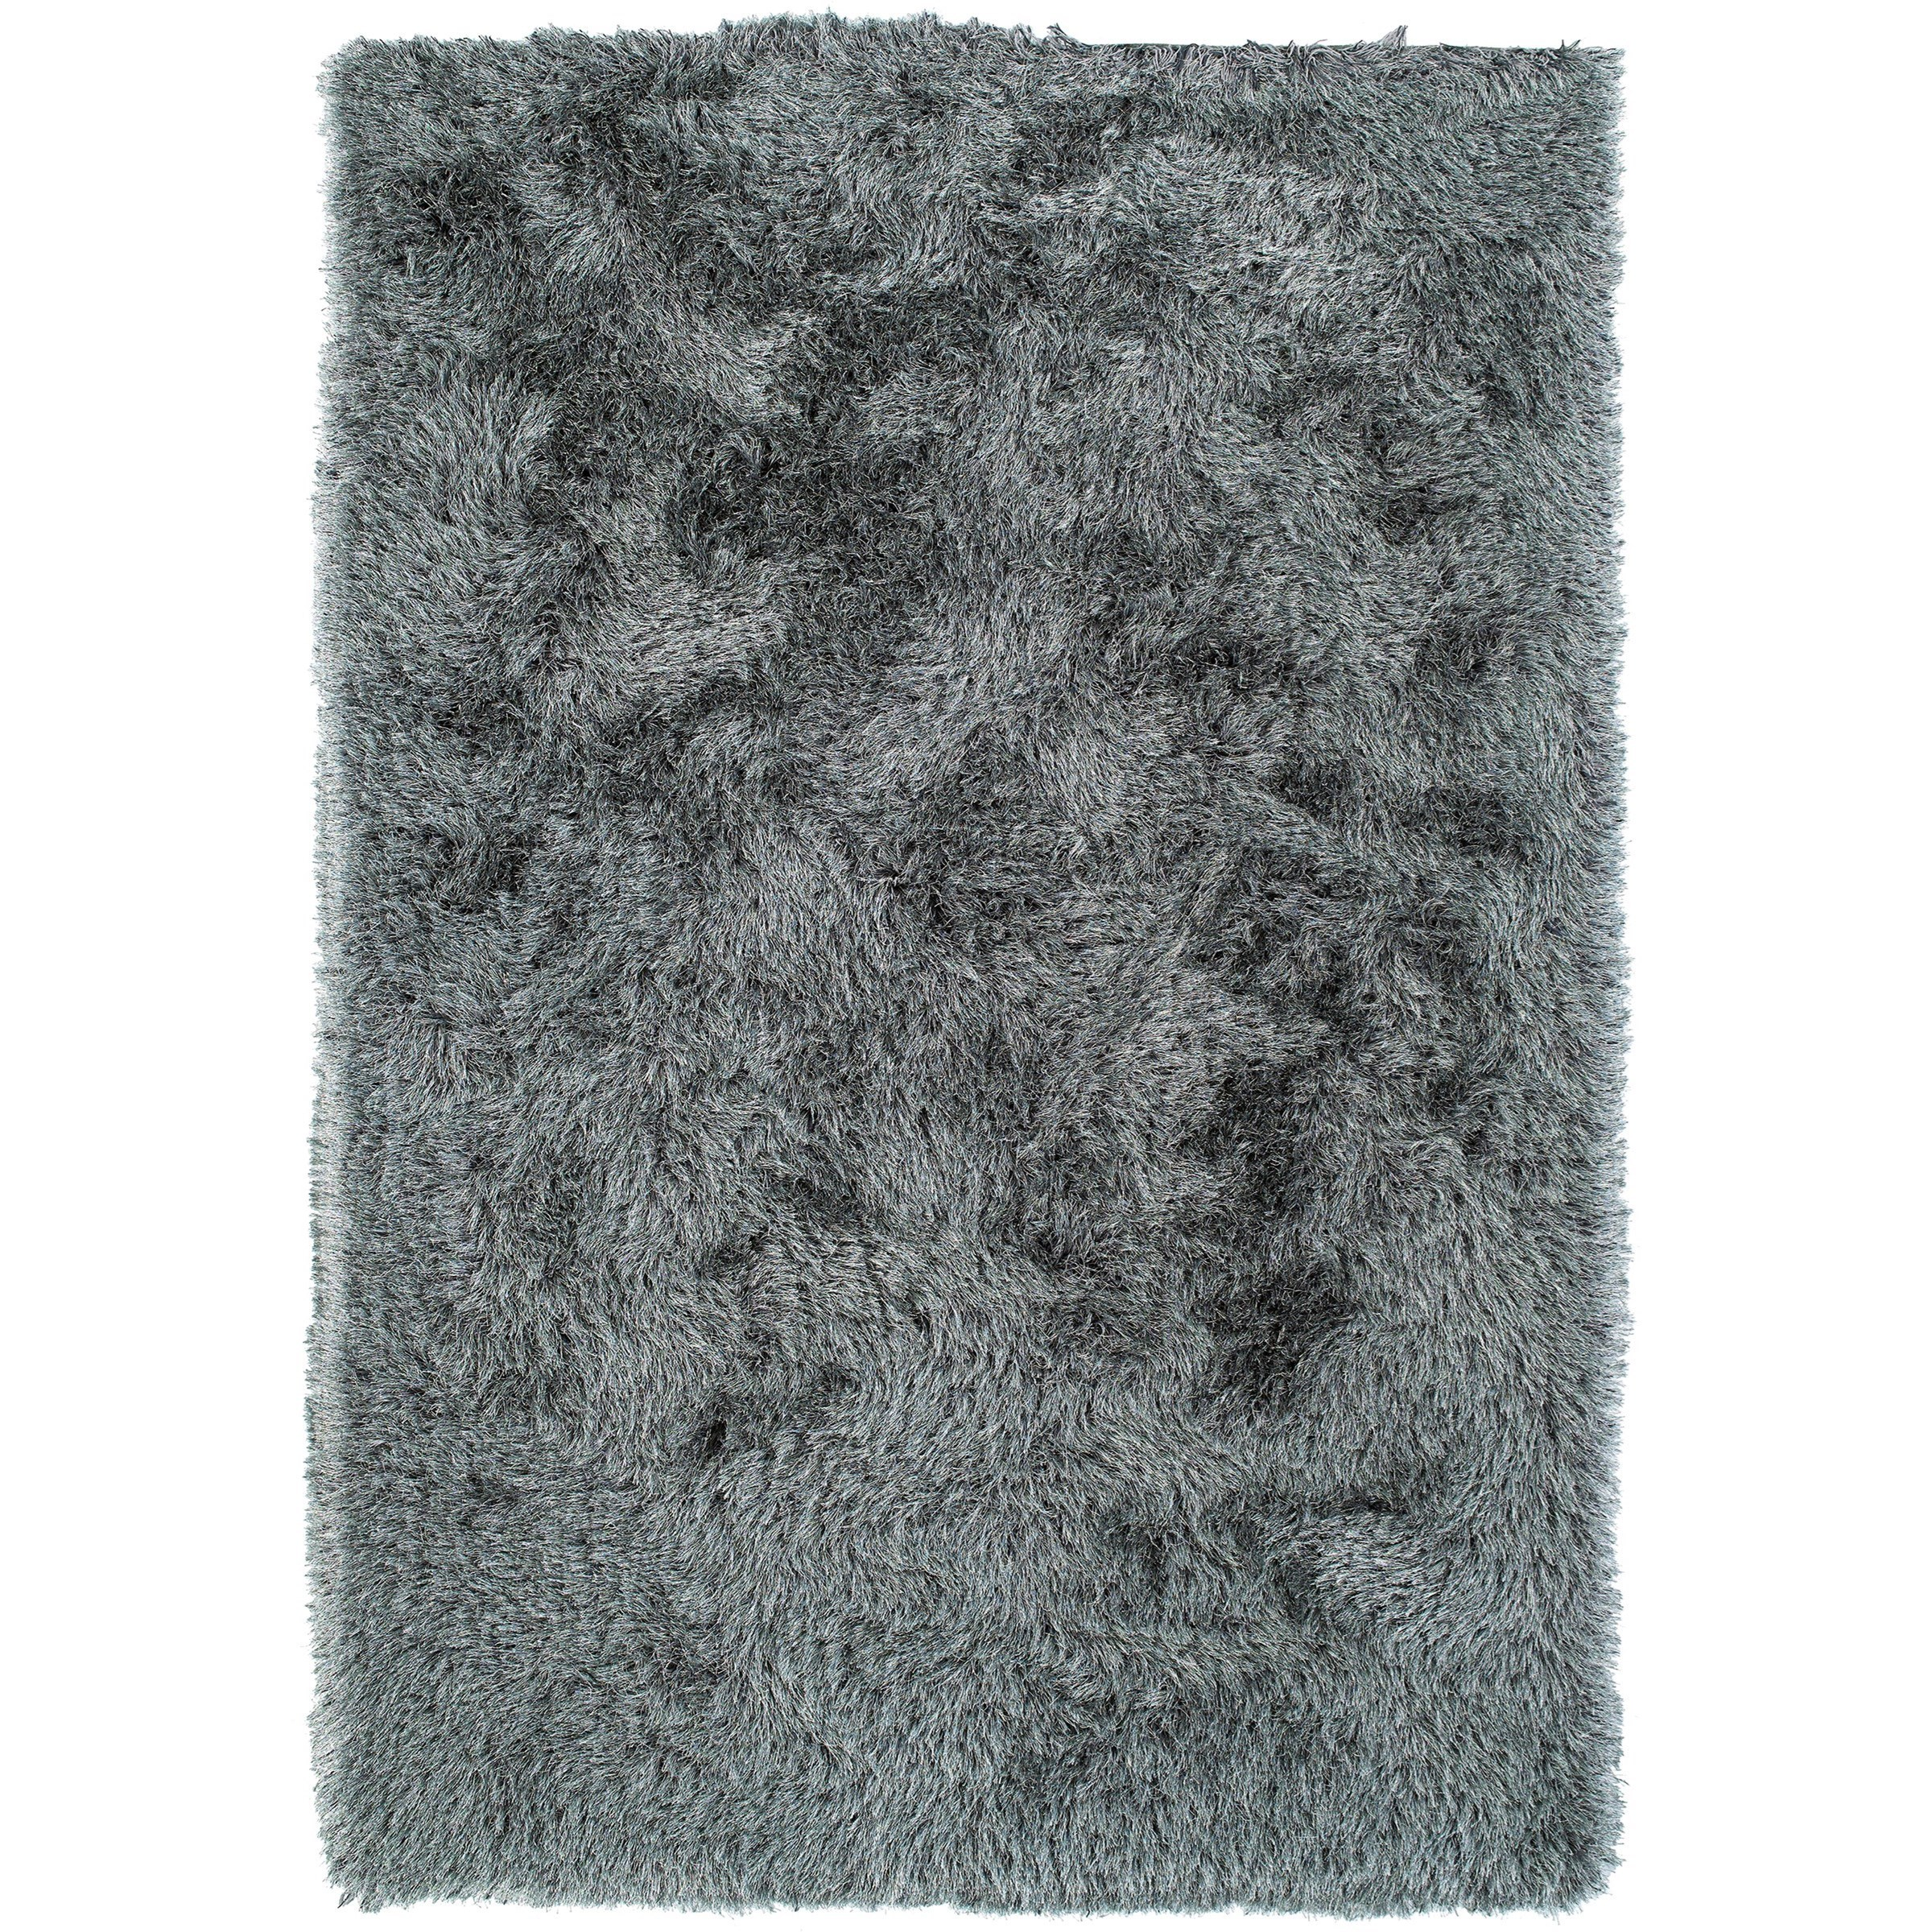 """Impact Pewter 5'X7'6"""" Area Rug at Walker's Furniture"""